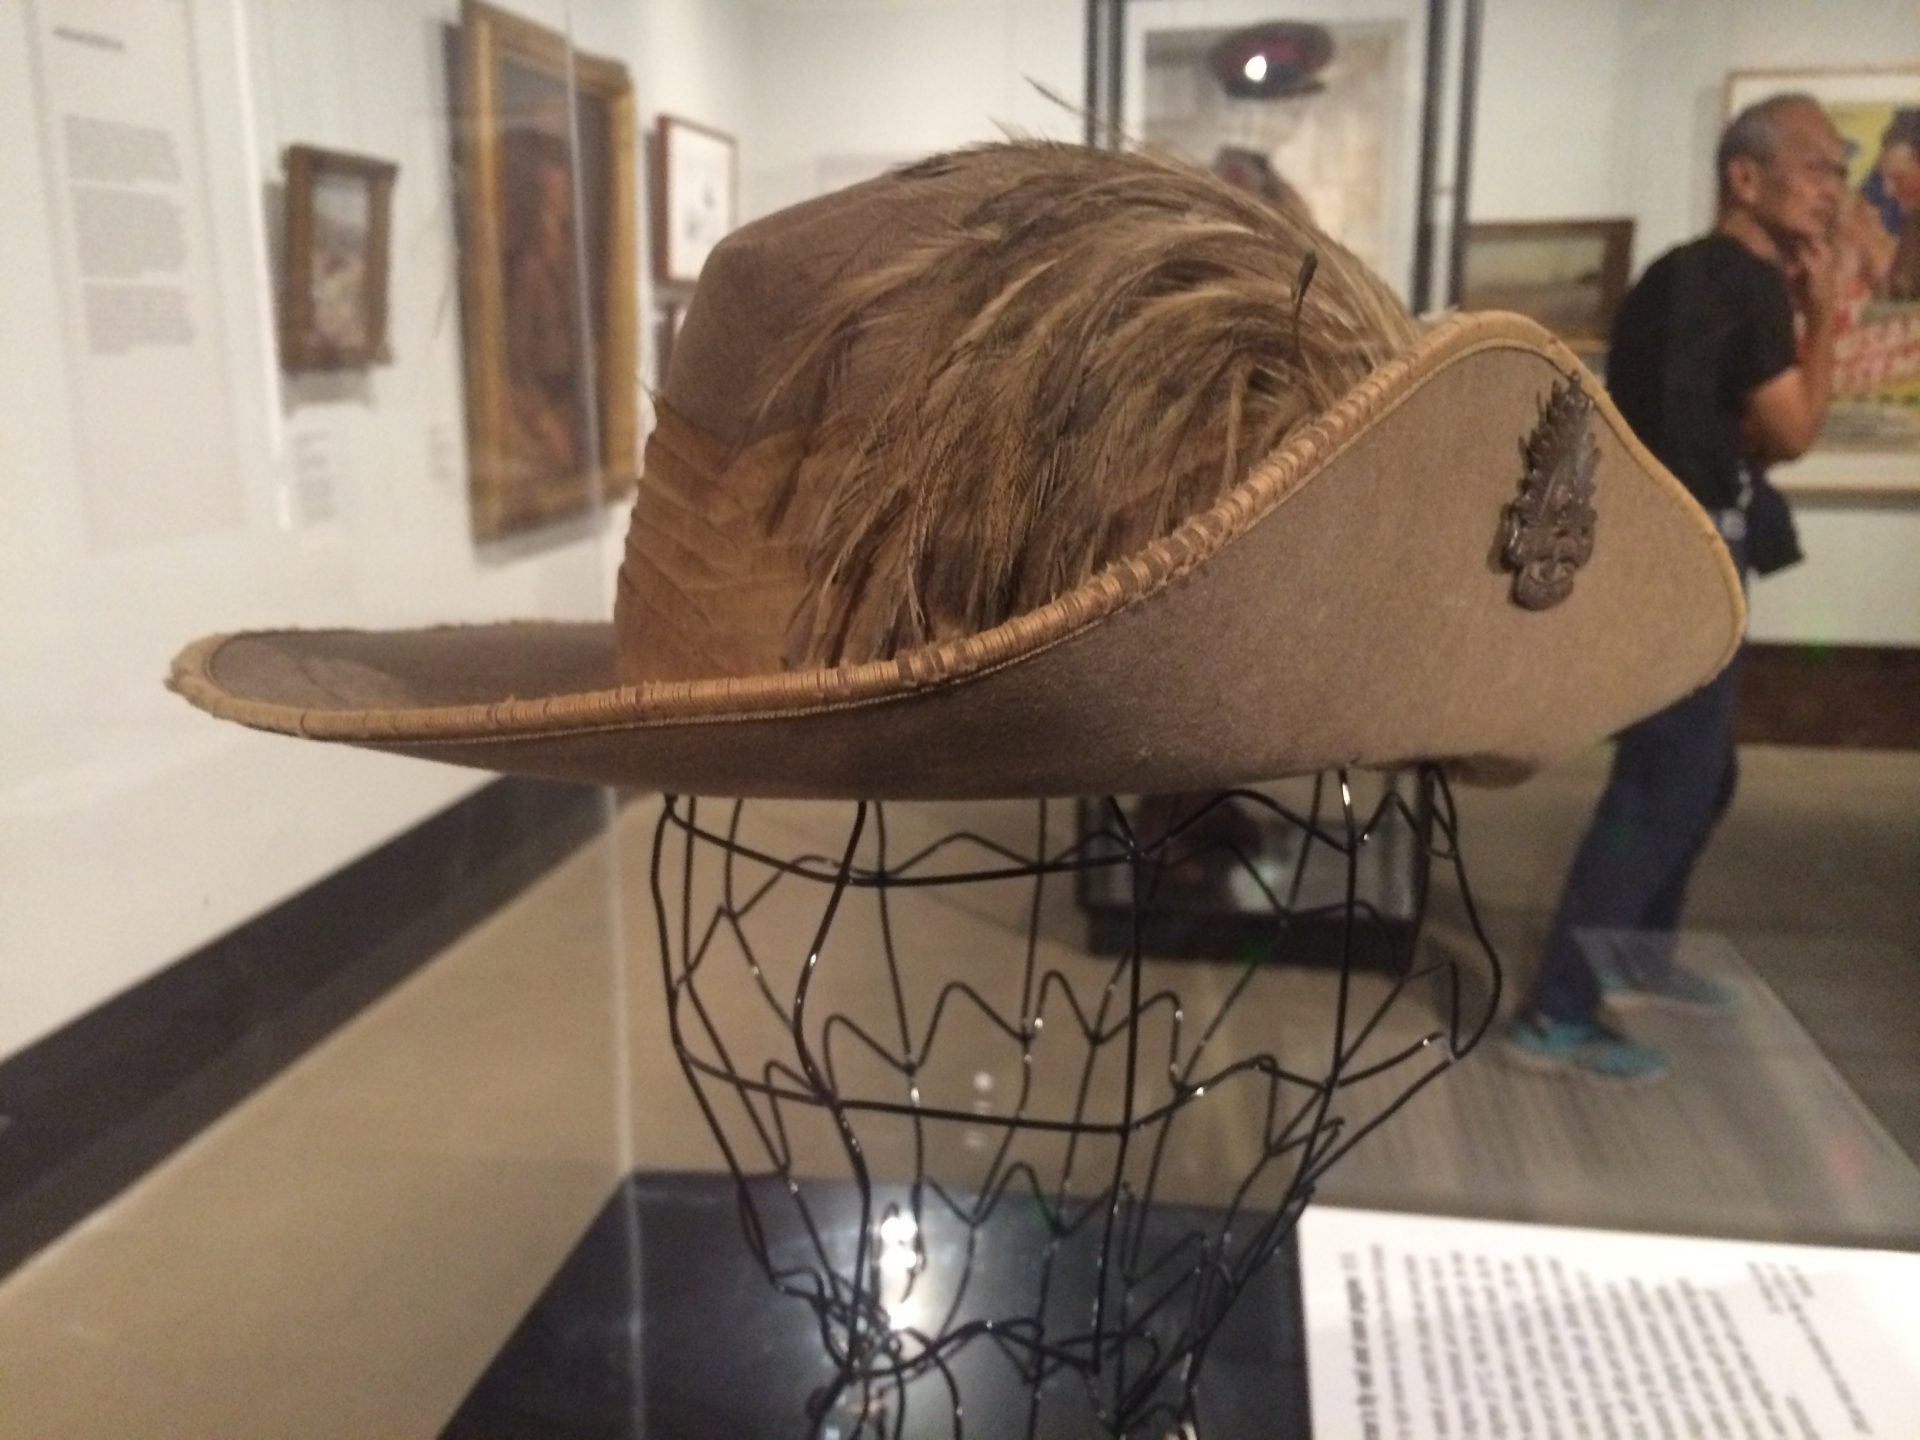 Photo by Trisha Haddock. Emu-plumed slouched hat. c 1917. Belonging to Trooper of the 9th Australian Light Horse Regiment. On display inside the Shrine of Remembrance.